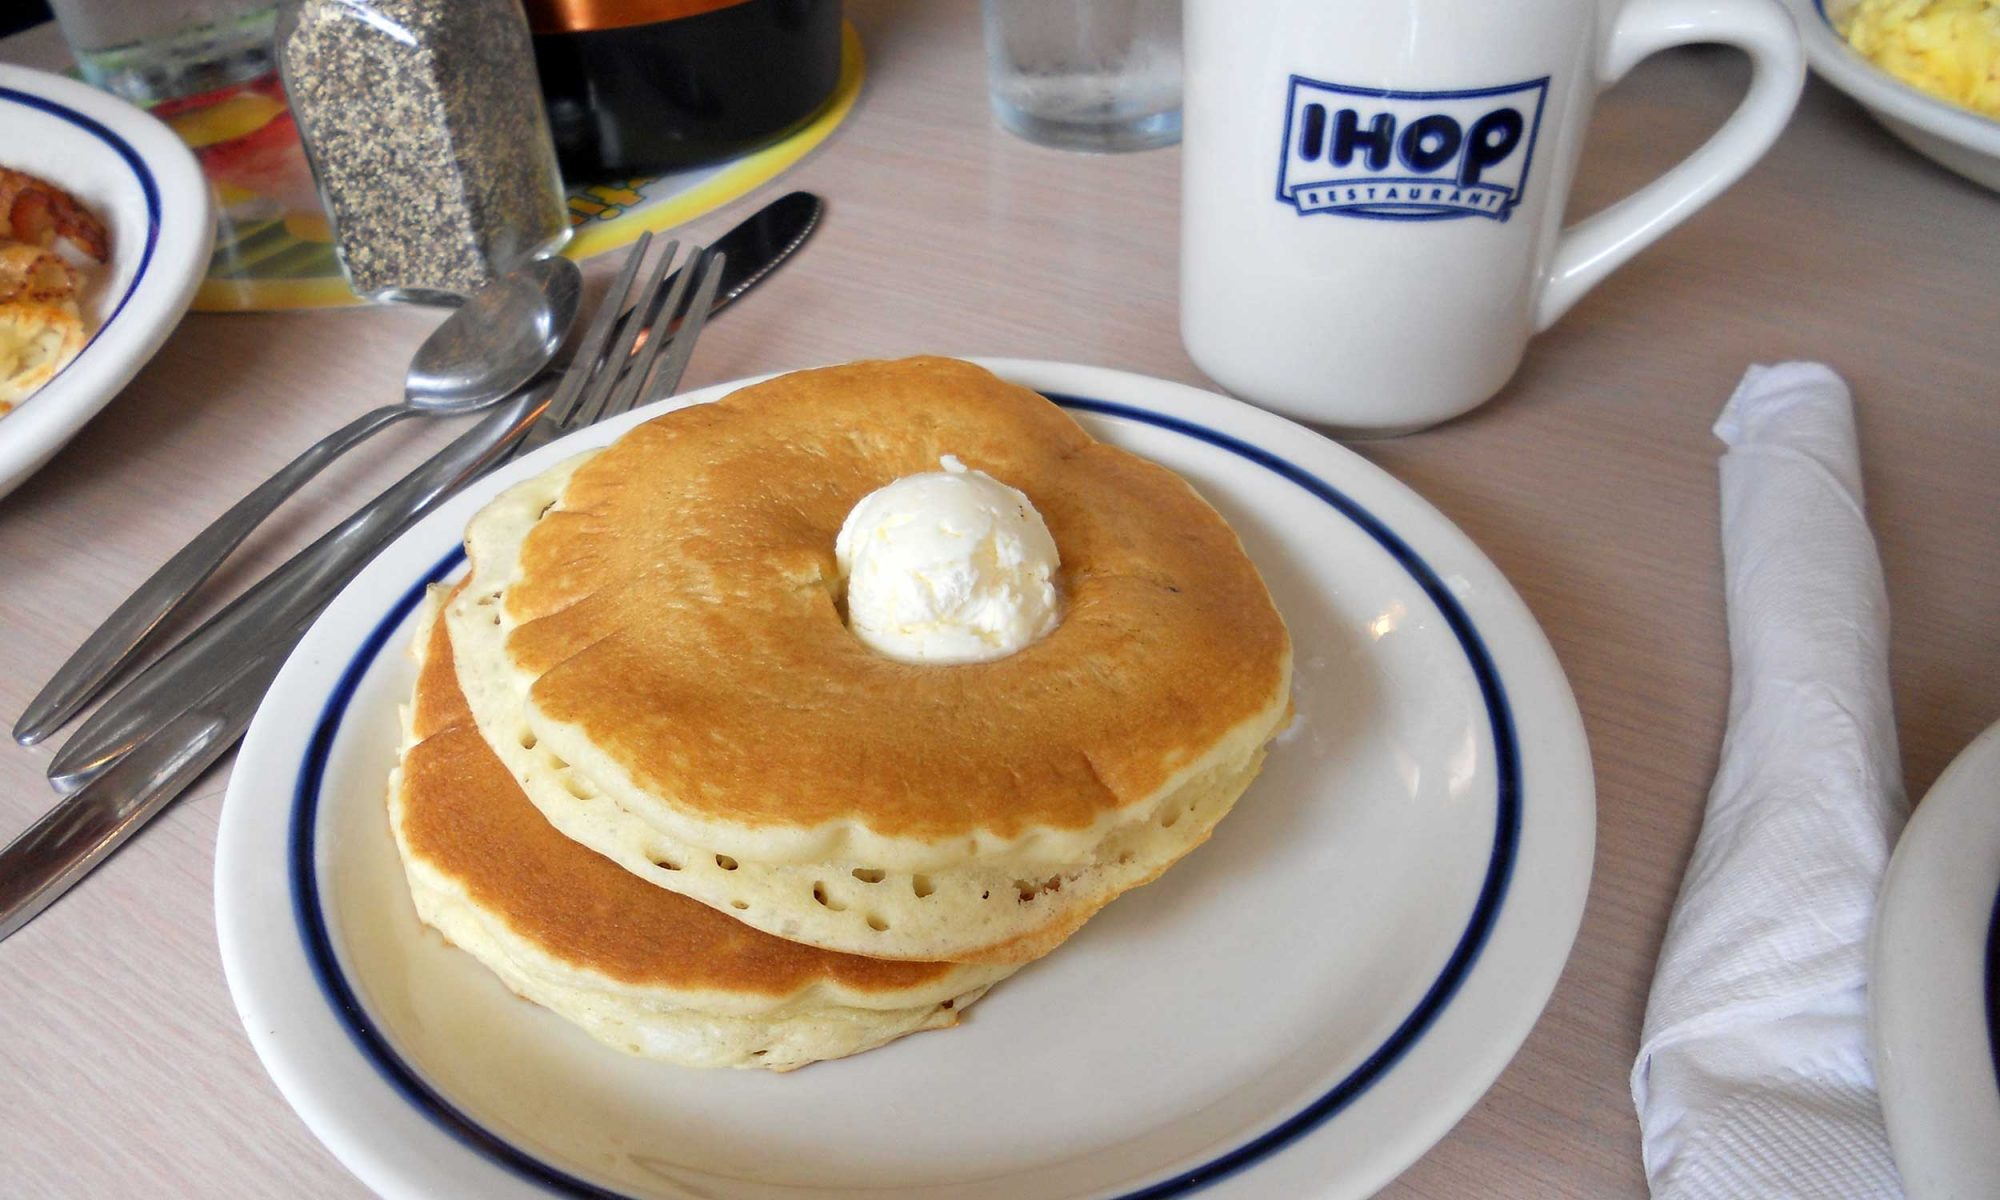 EC: Get Free IHOP Pancakes on March 7 for National Pancake Day